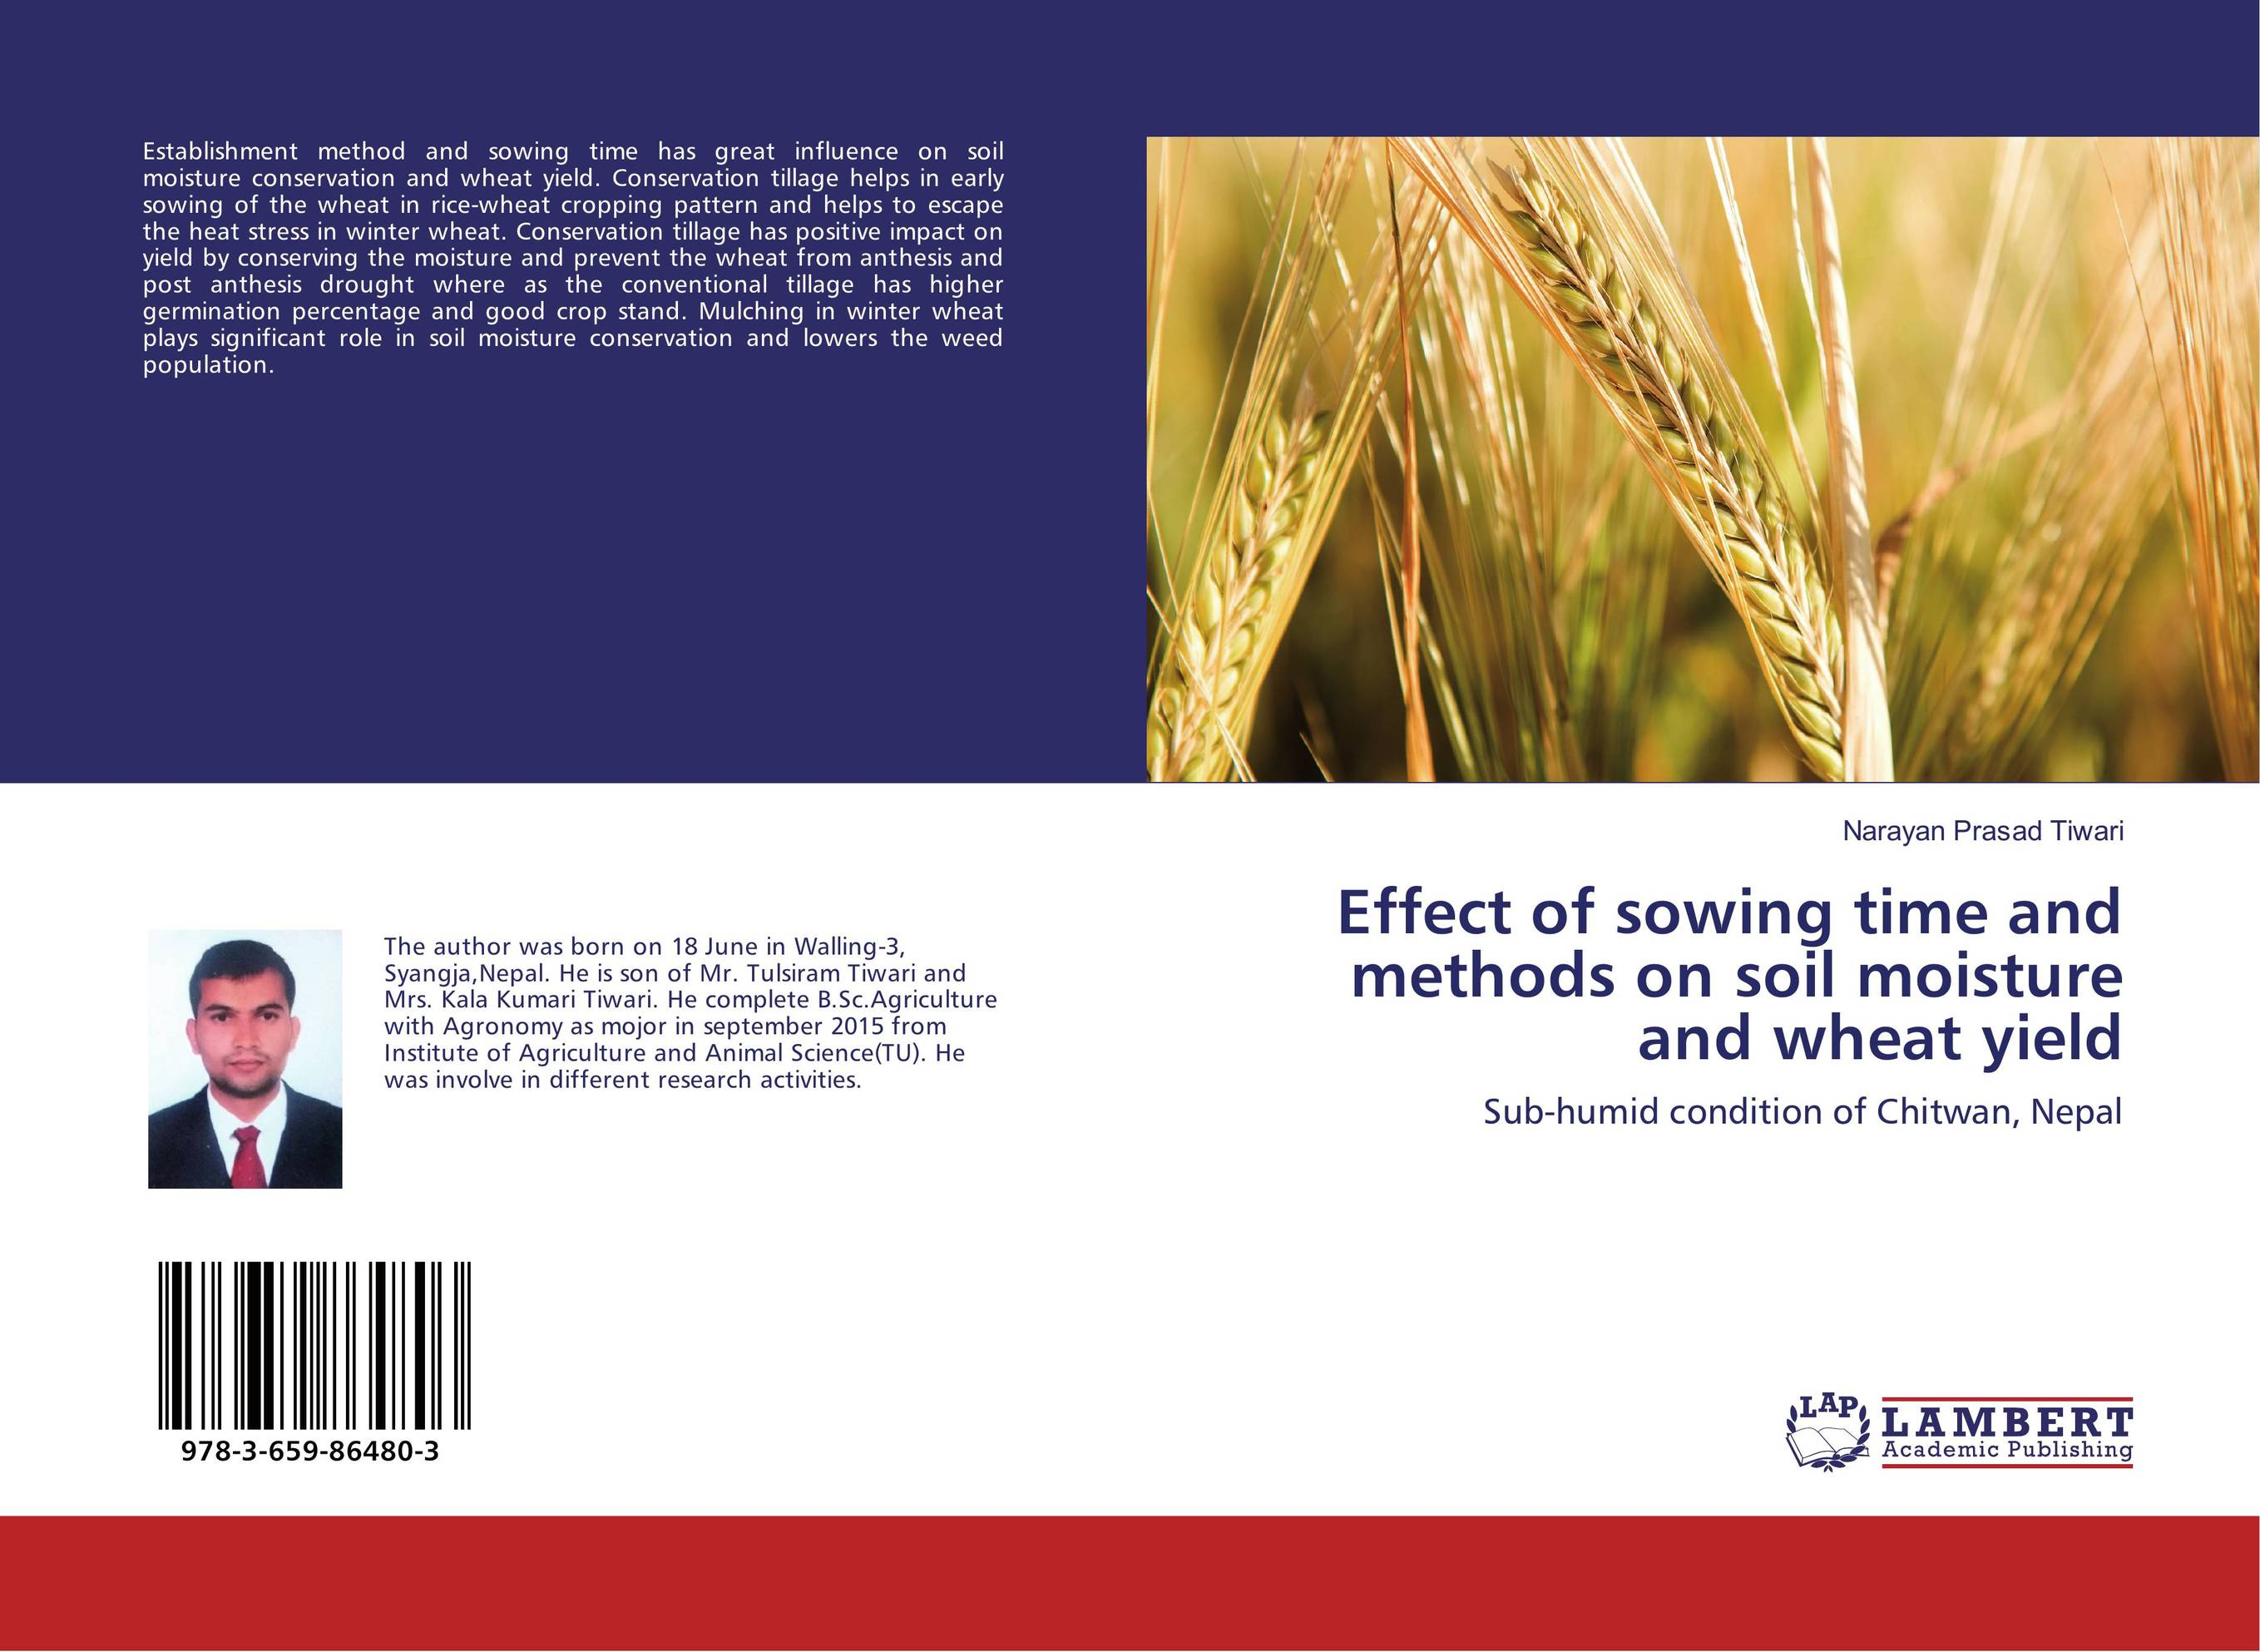 Effect of sowing time and methods on soil moisture and wheat yield